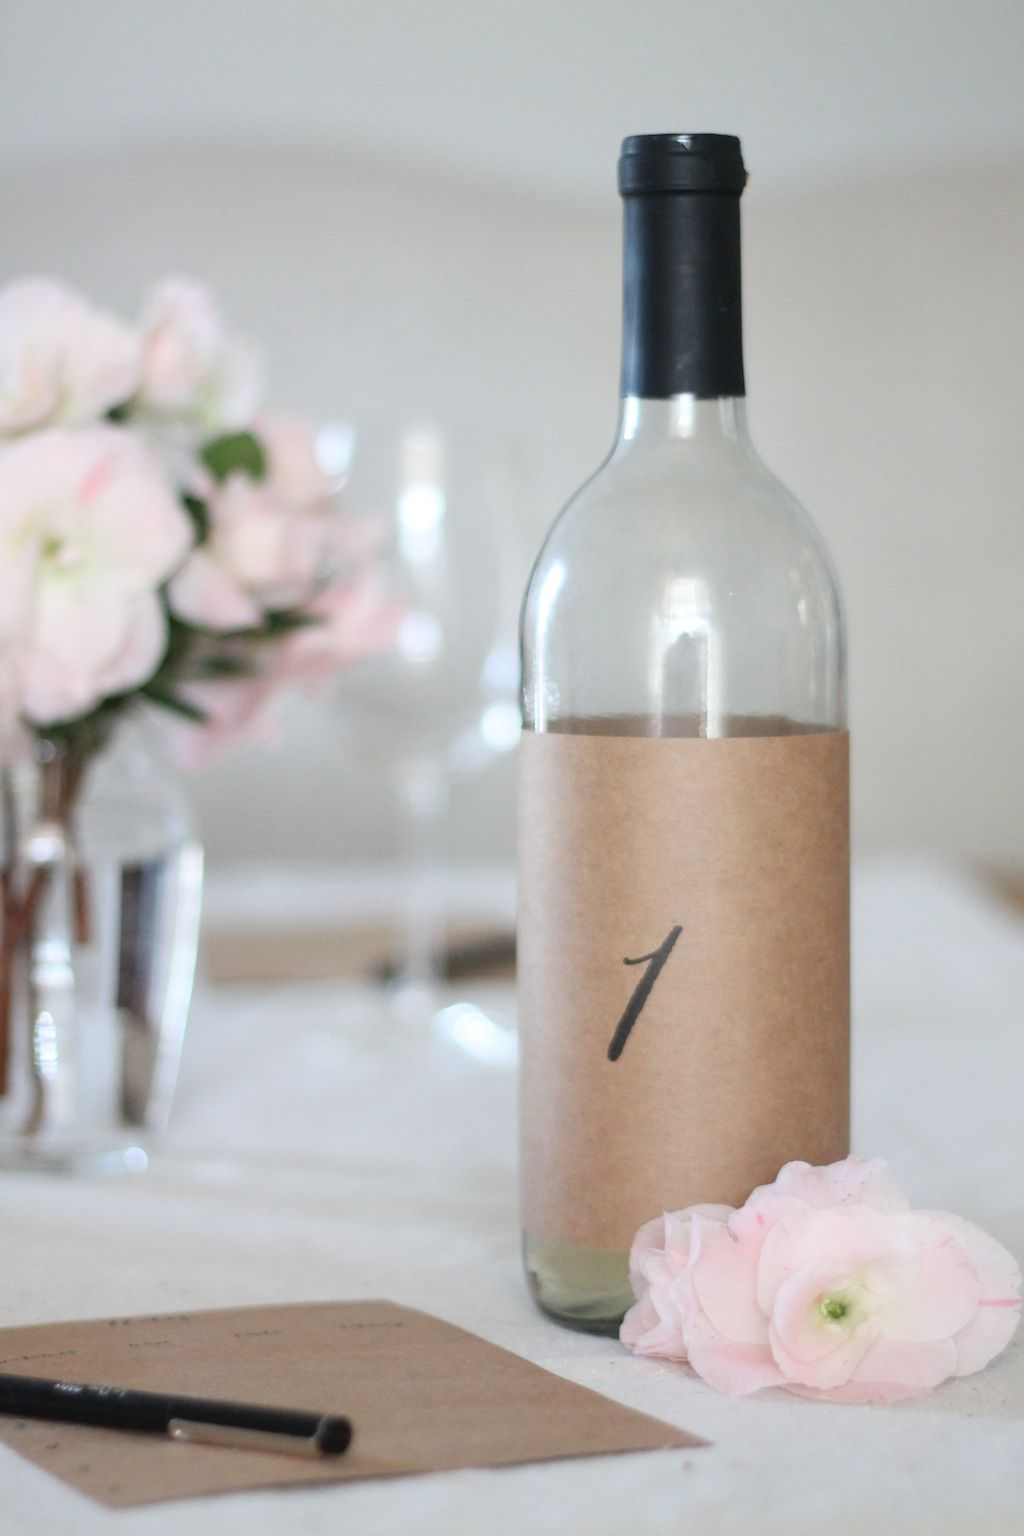 free printable bottle covers & wine tasting notes to host an ...